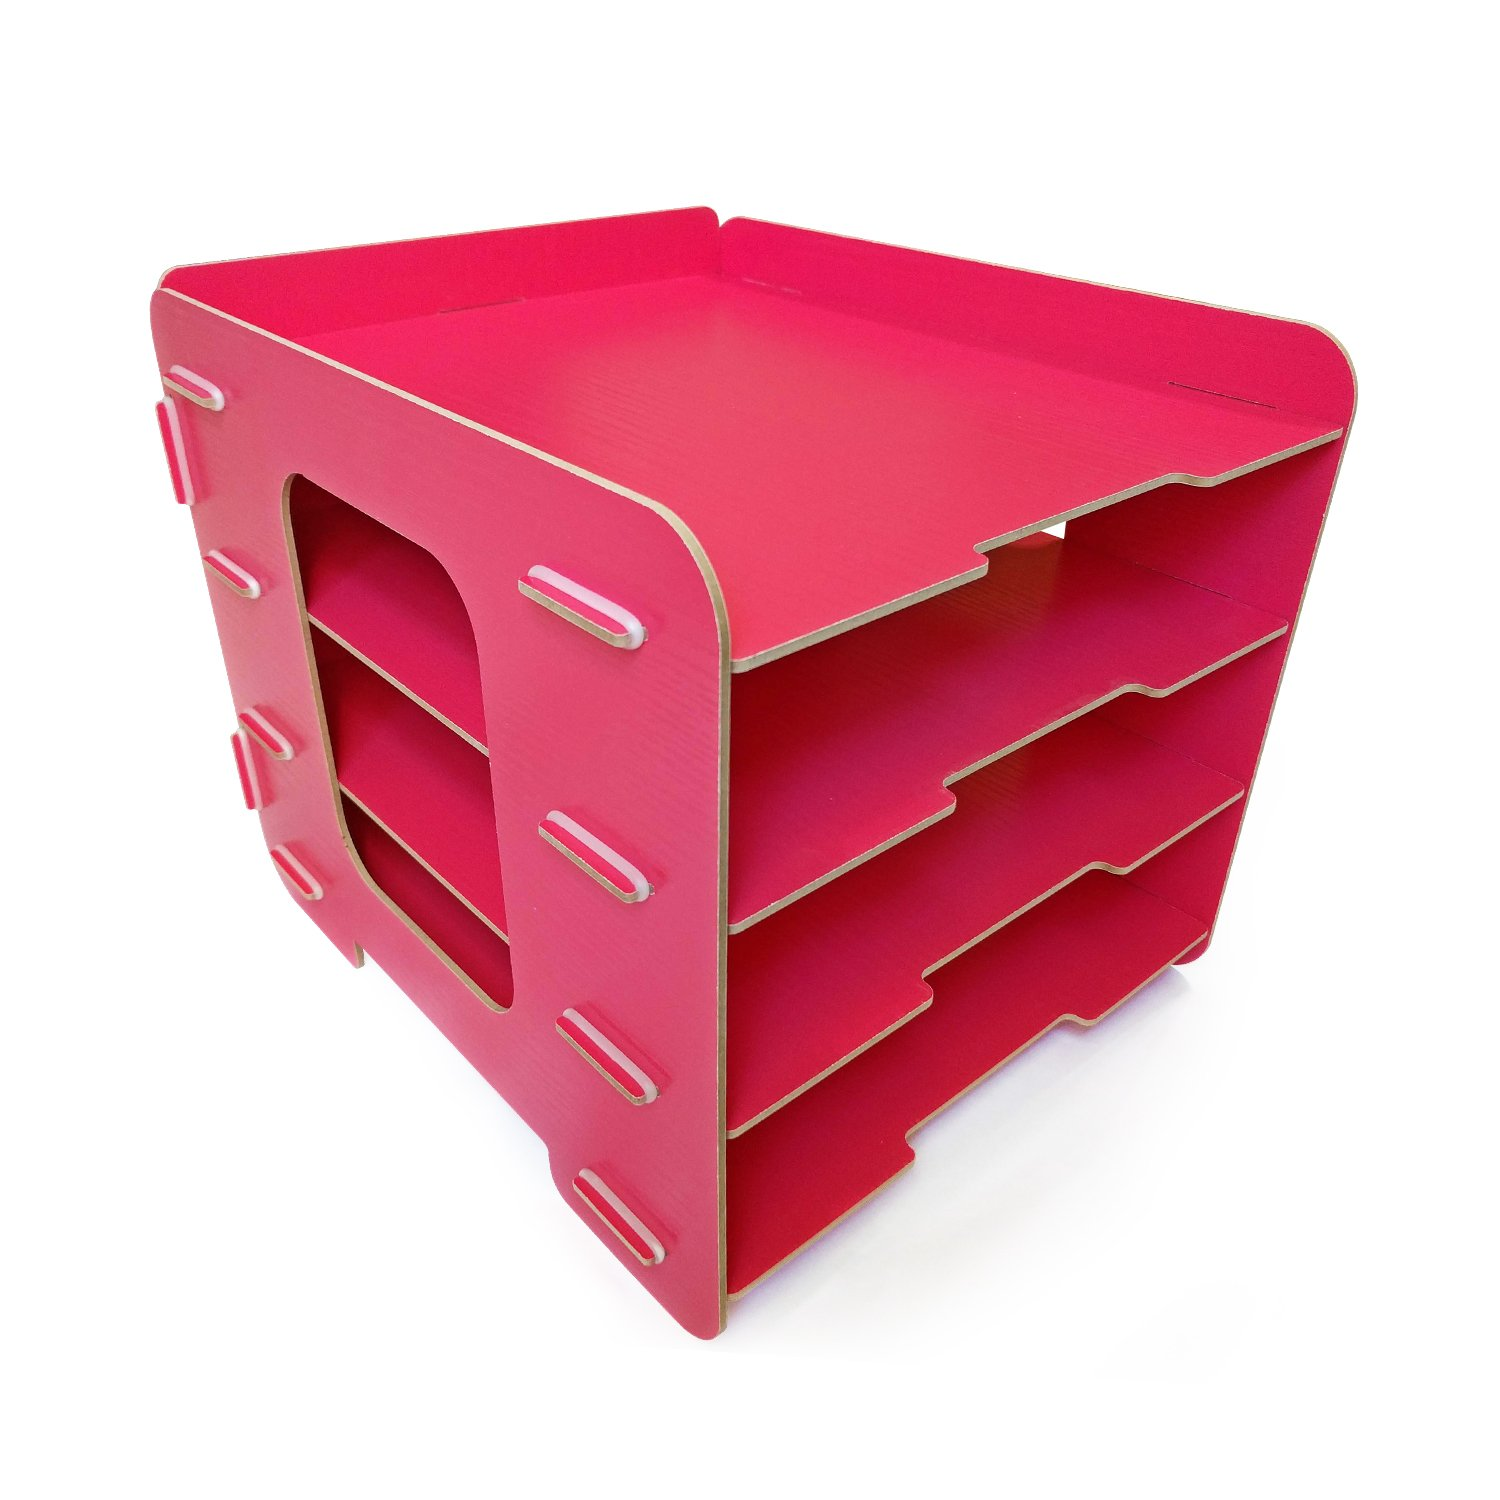 Watermelon Desk Paper Organizer Sturdy Wood Office Letter Tray! Easy Assembly A4 File Sorting 4 Tier